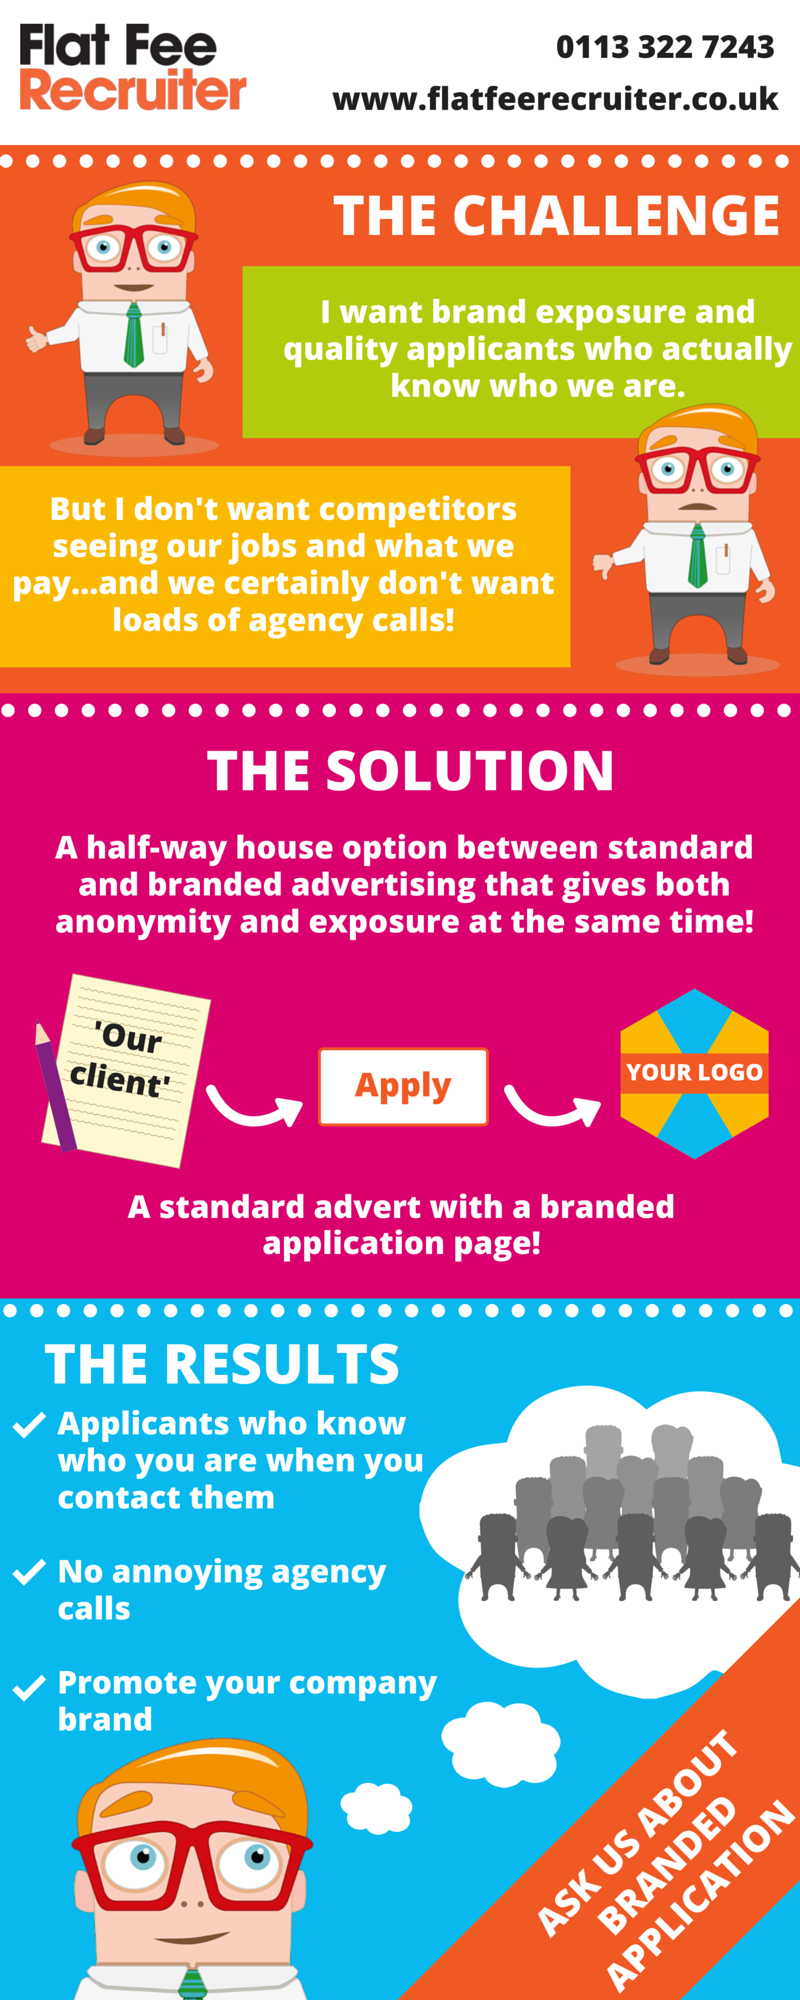 Benefits of Branded Application